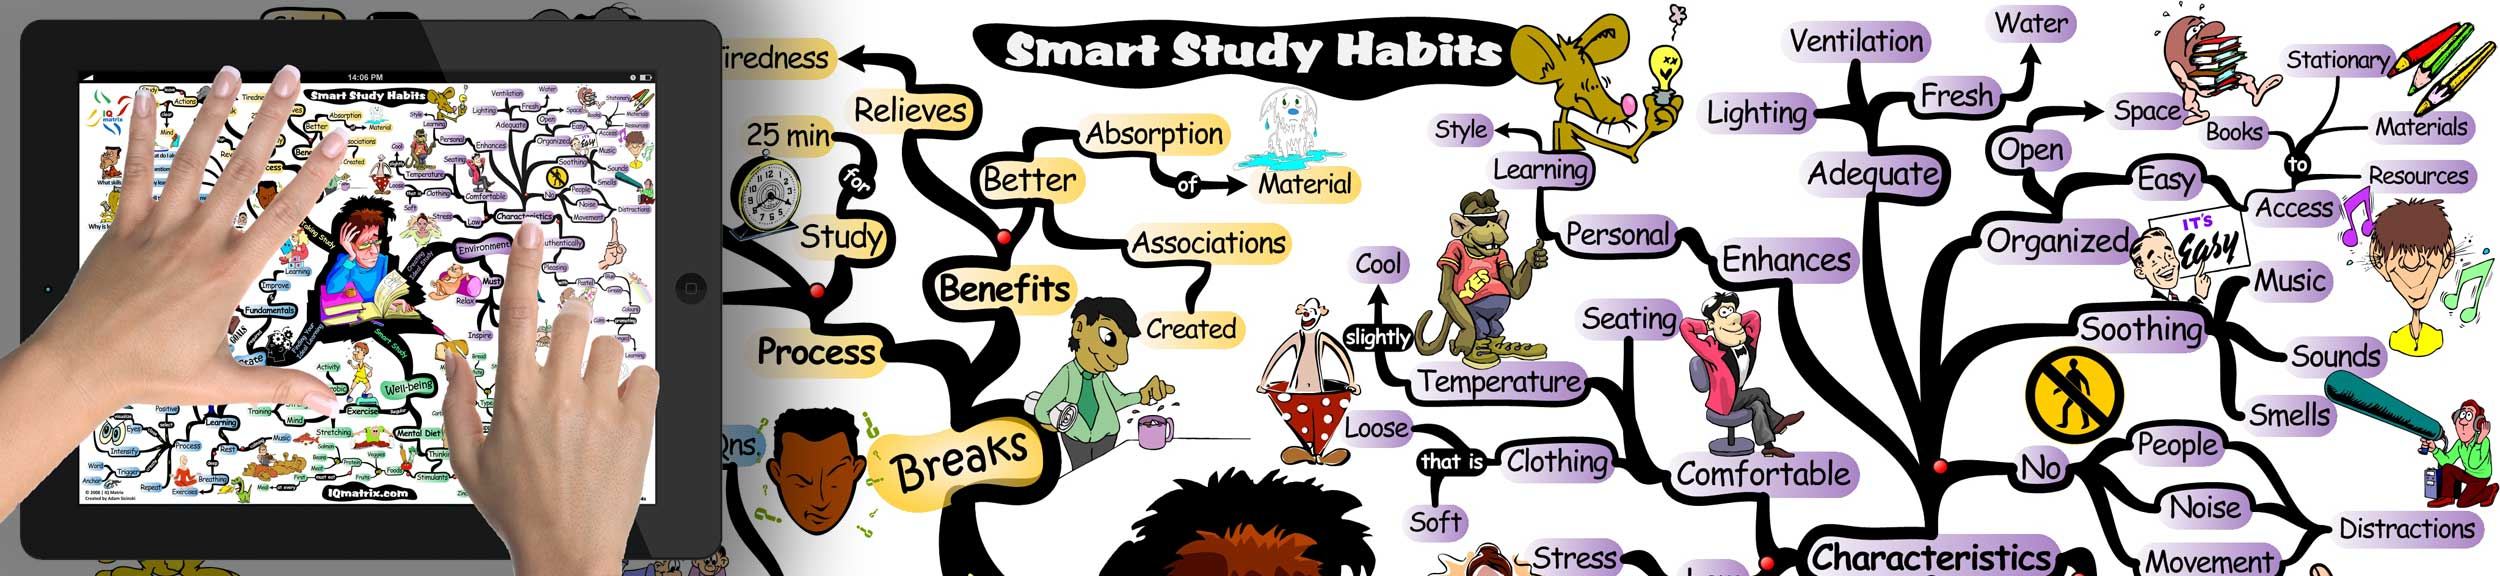 How to Develop Smart Study Habits mind map